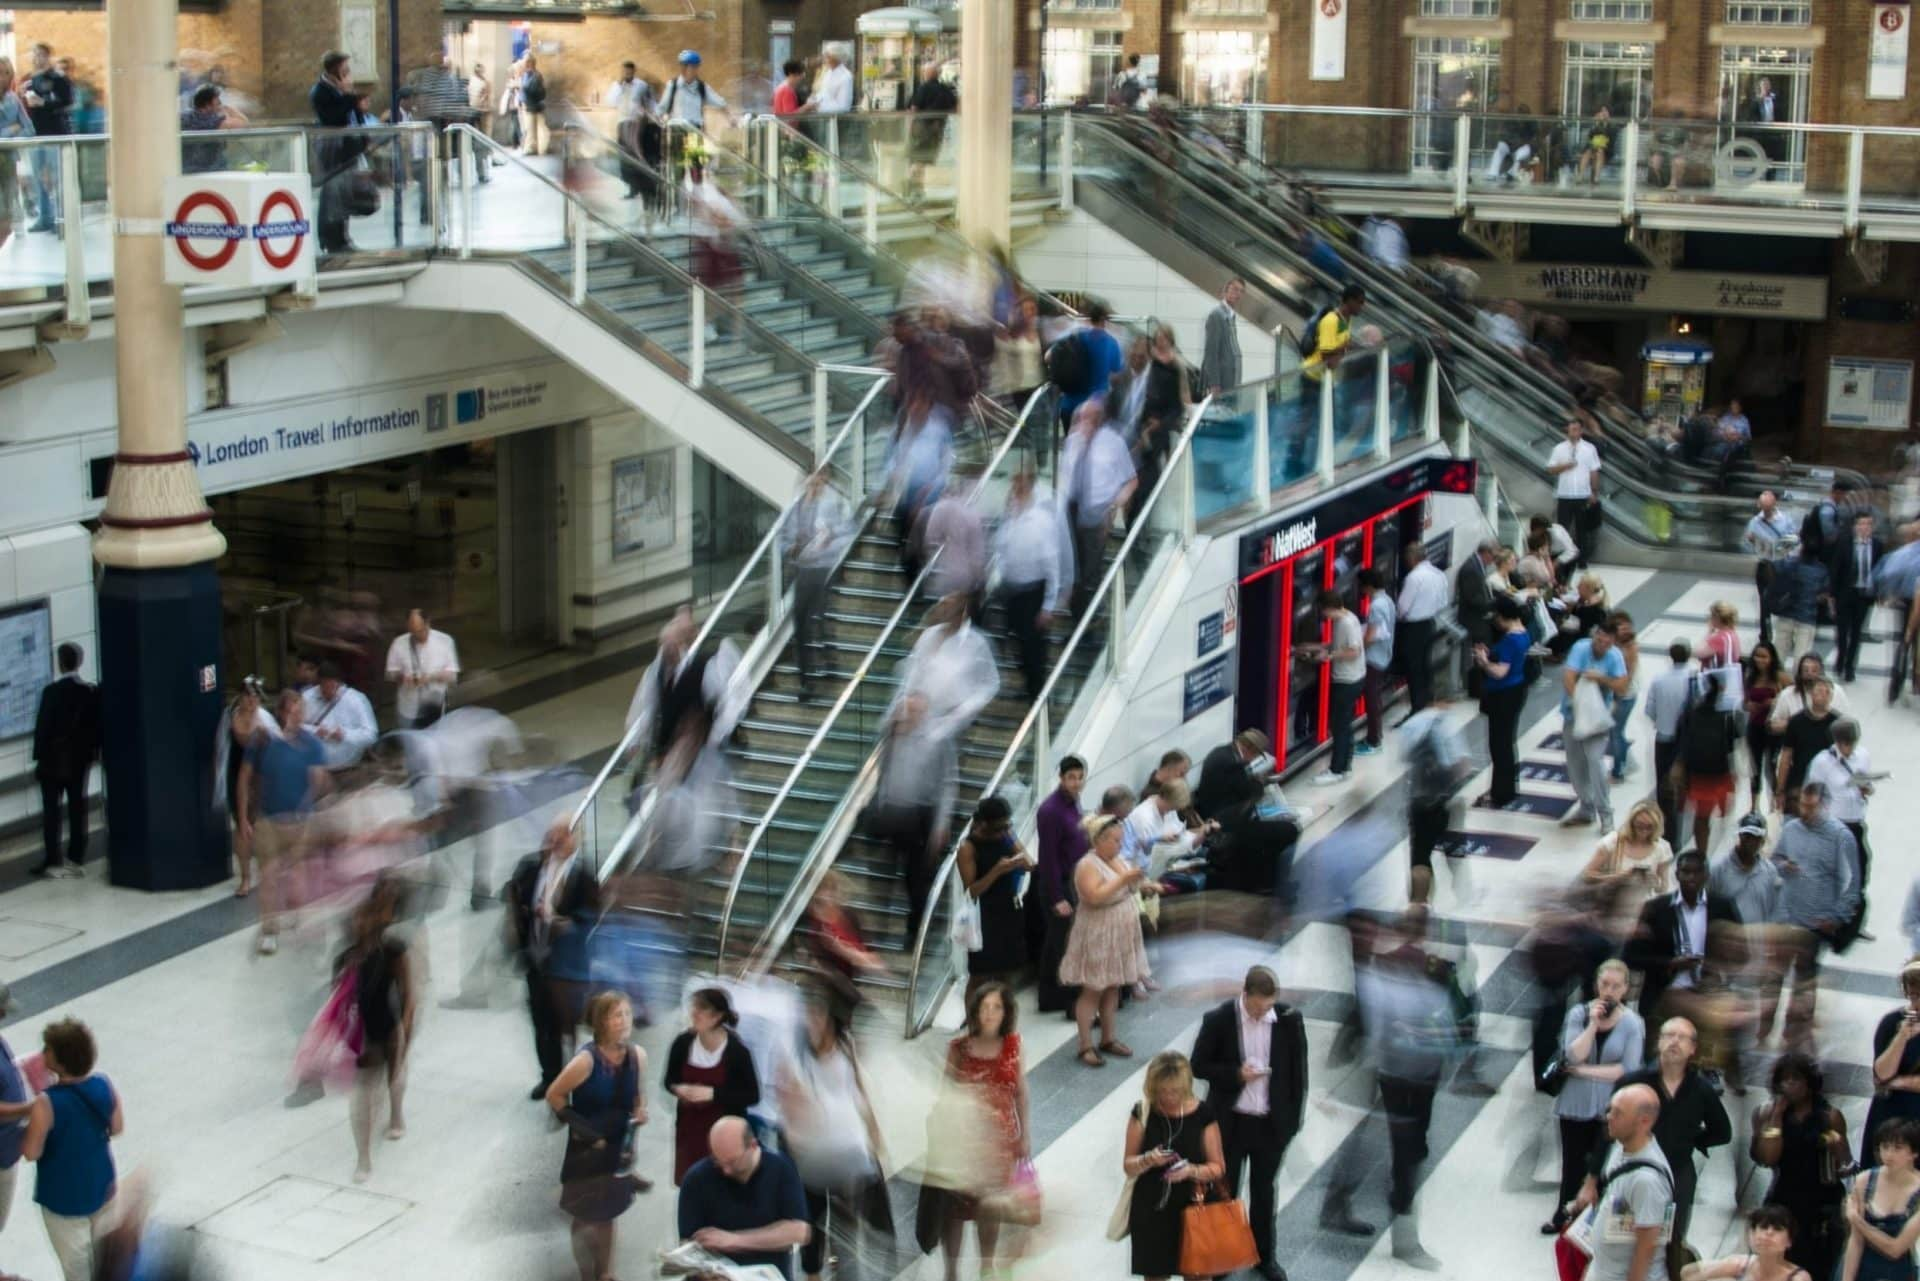 Busy London Underground view - ASL image